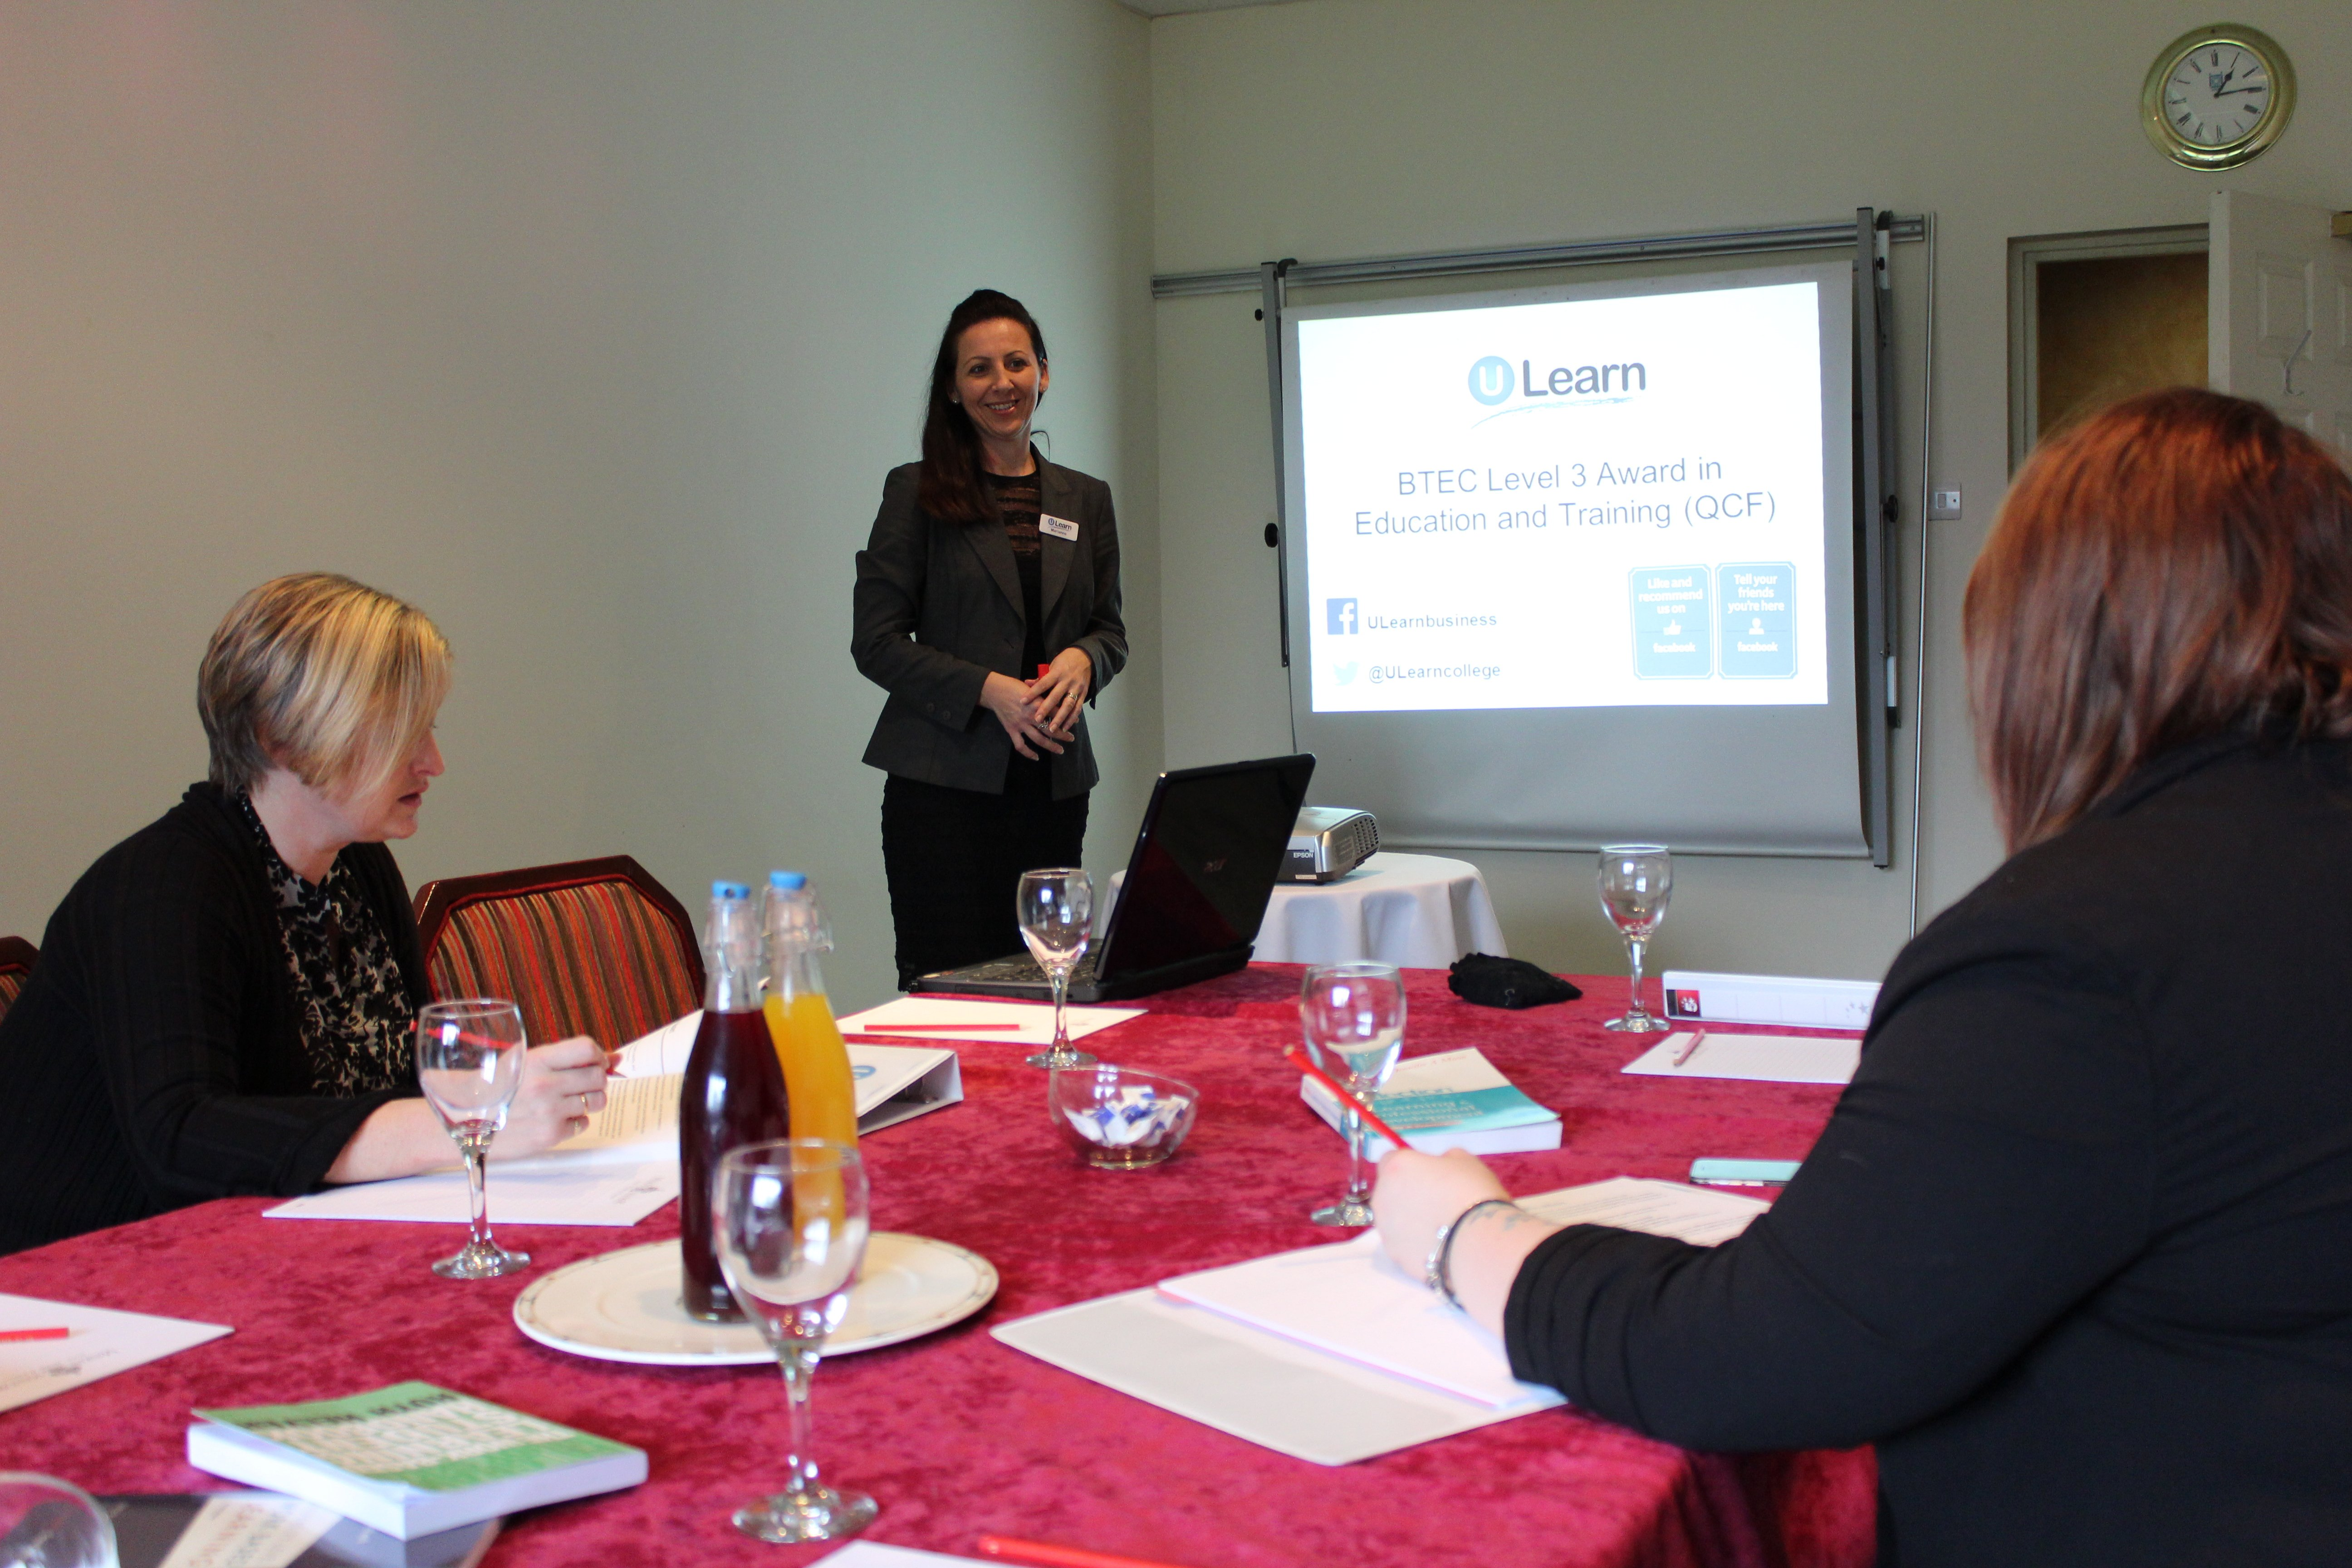 Image of a smartly dressed woman delivering a presentation to  a room of several people